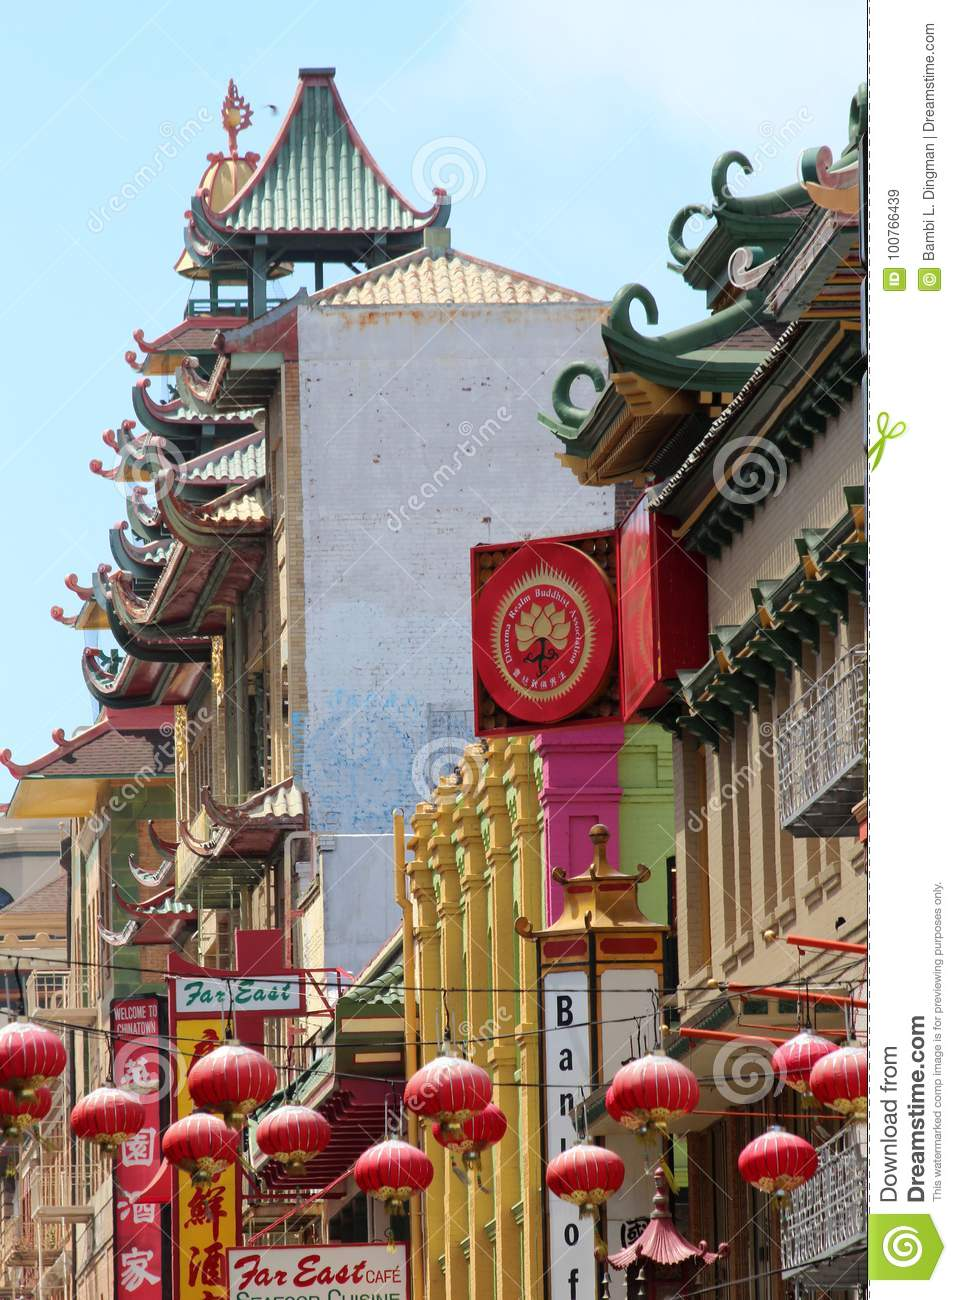 san francisco chinatown editorial stock image image of chinese